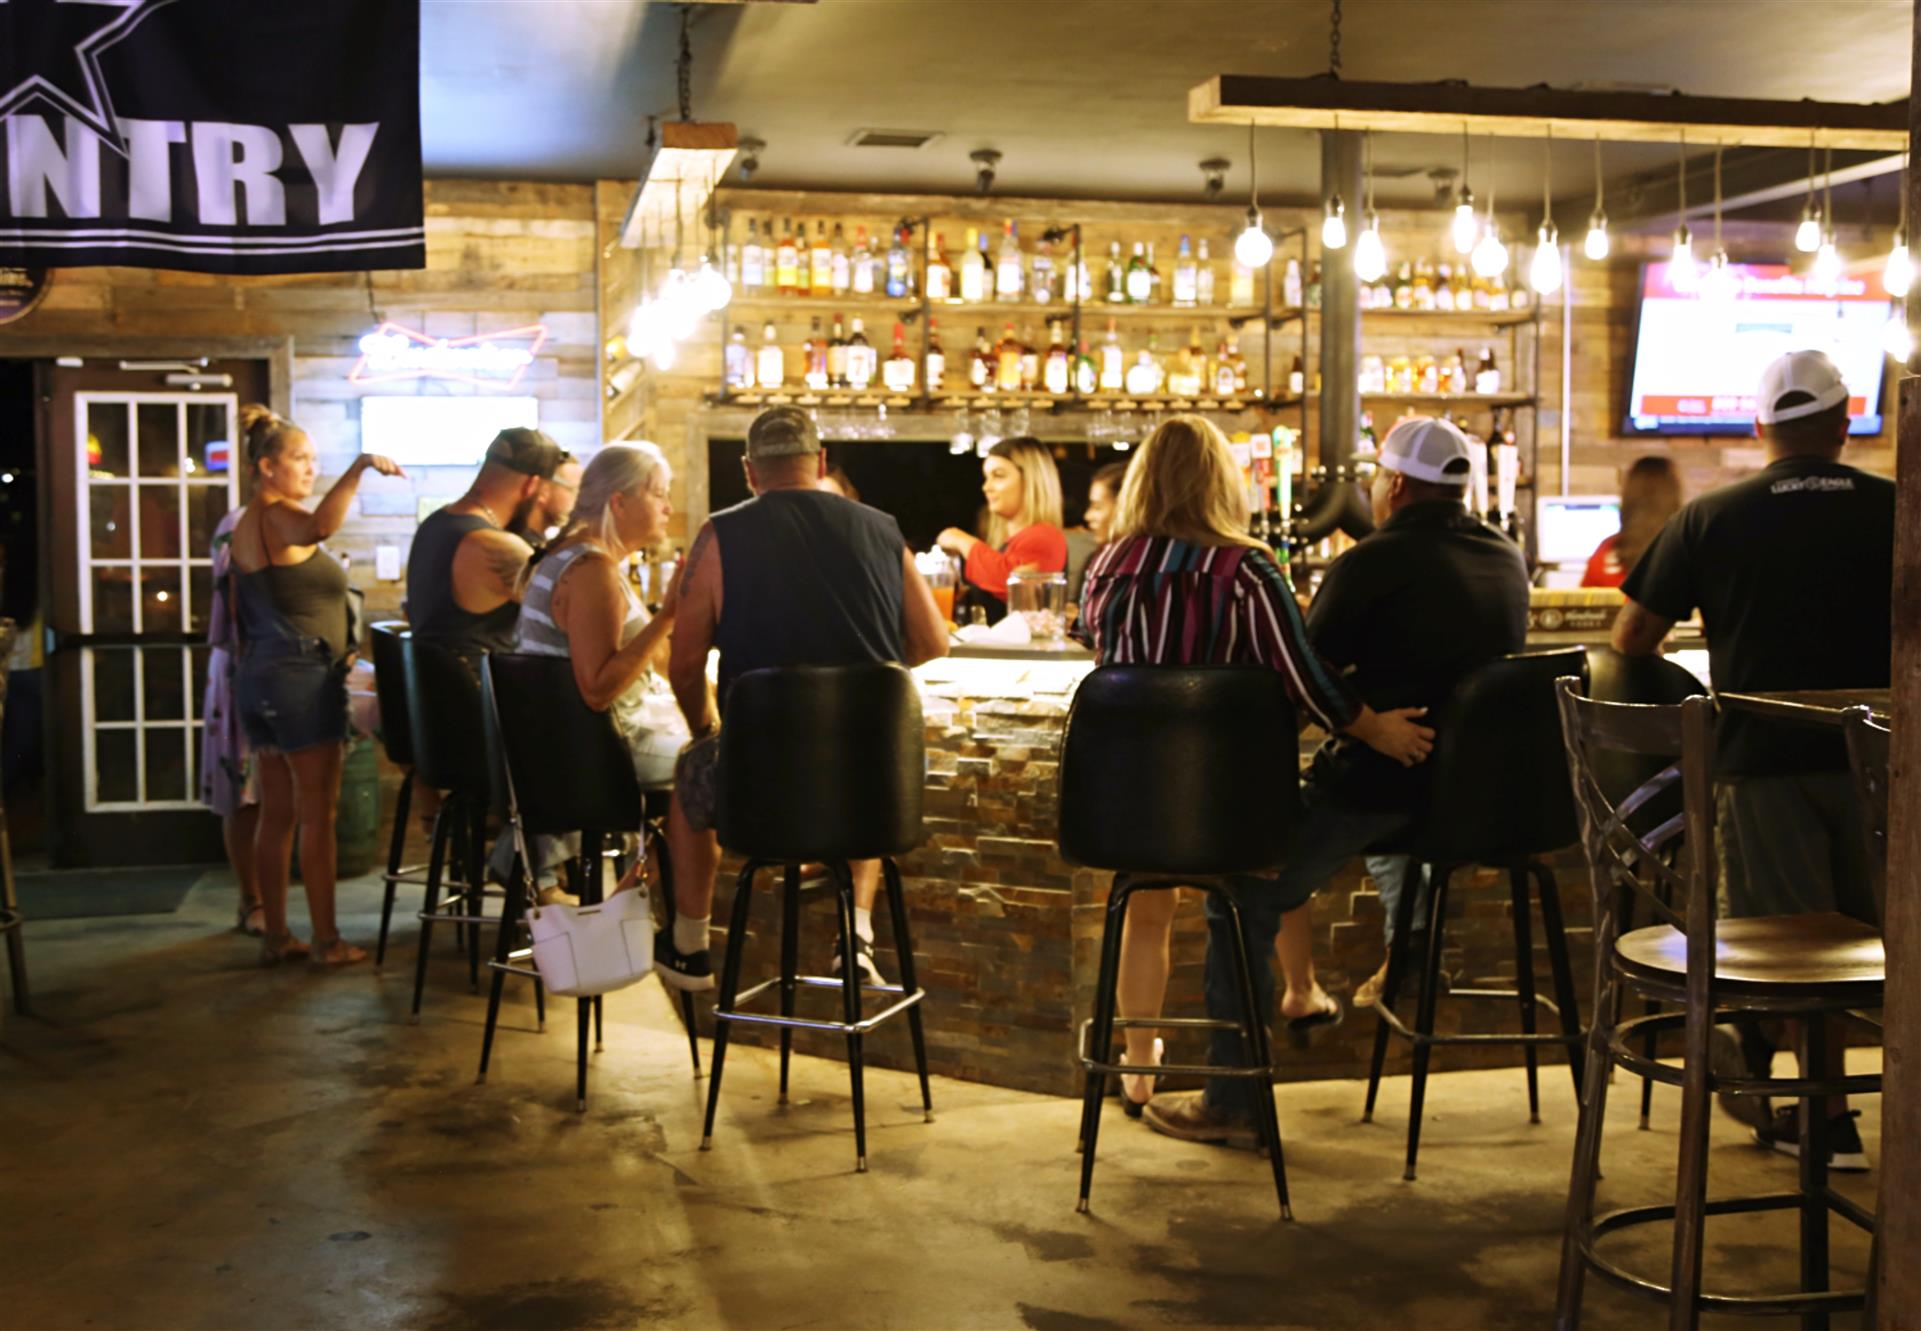 interior bar with customers crowded around the counter sitting on stools